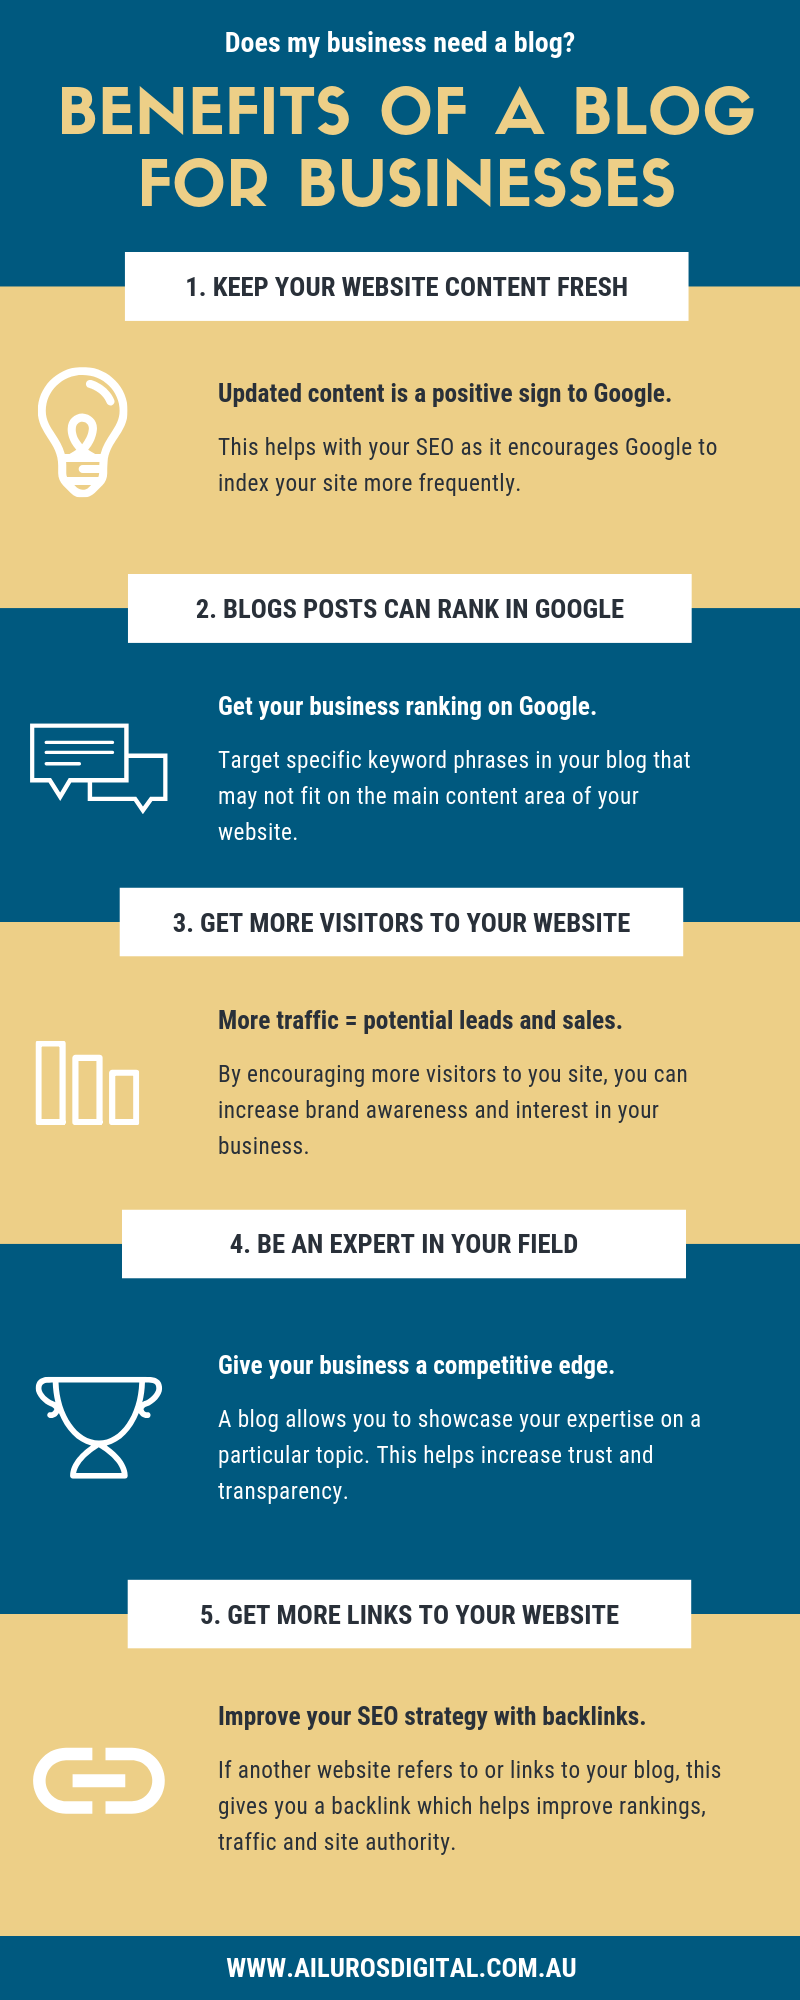 Benefits of a blog infographic